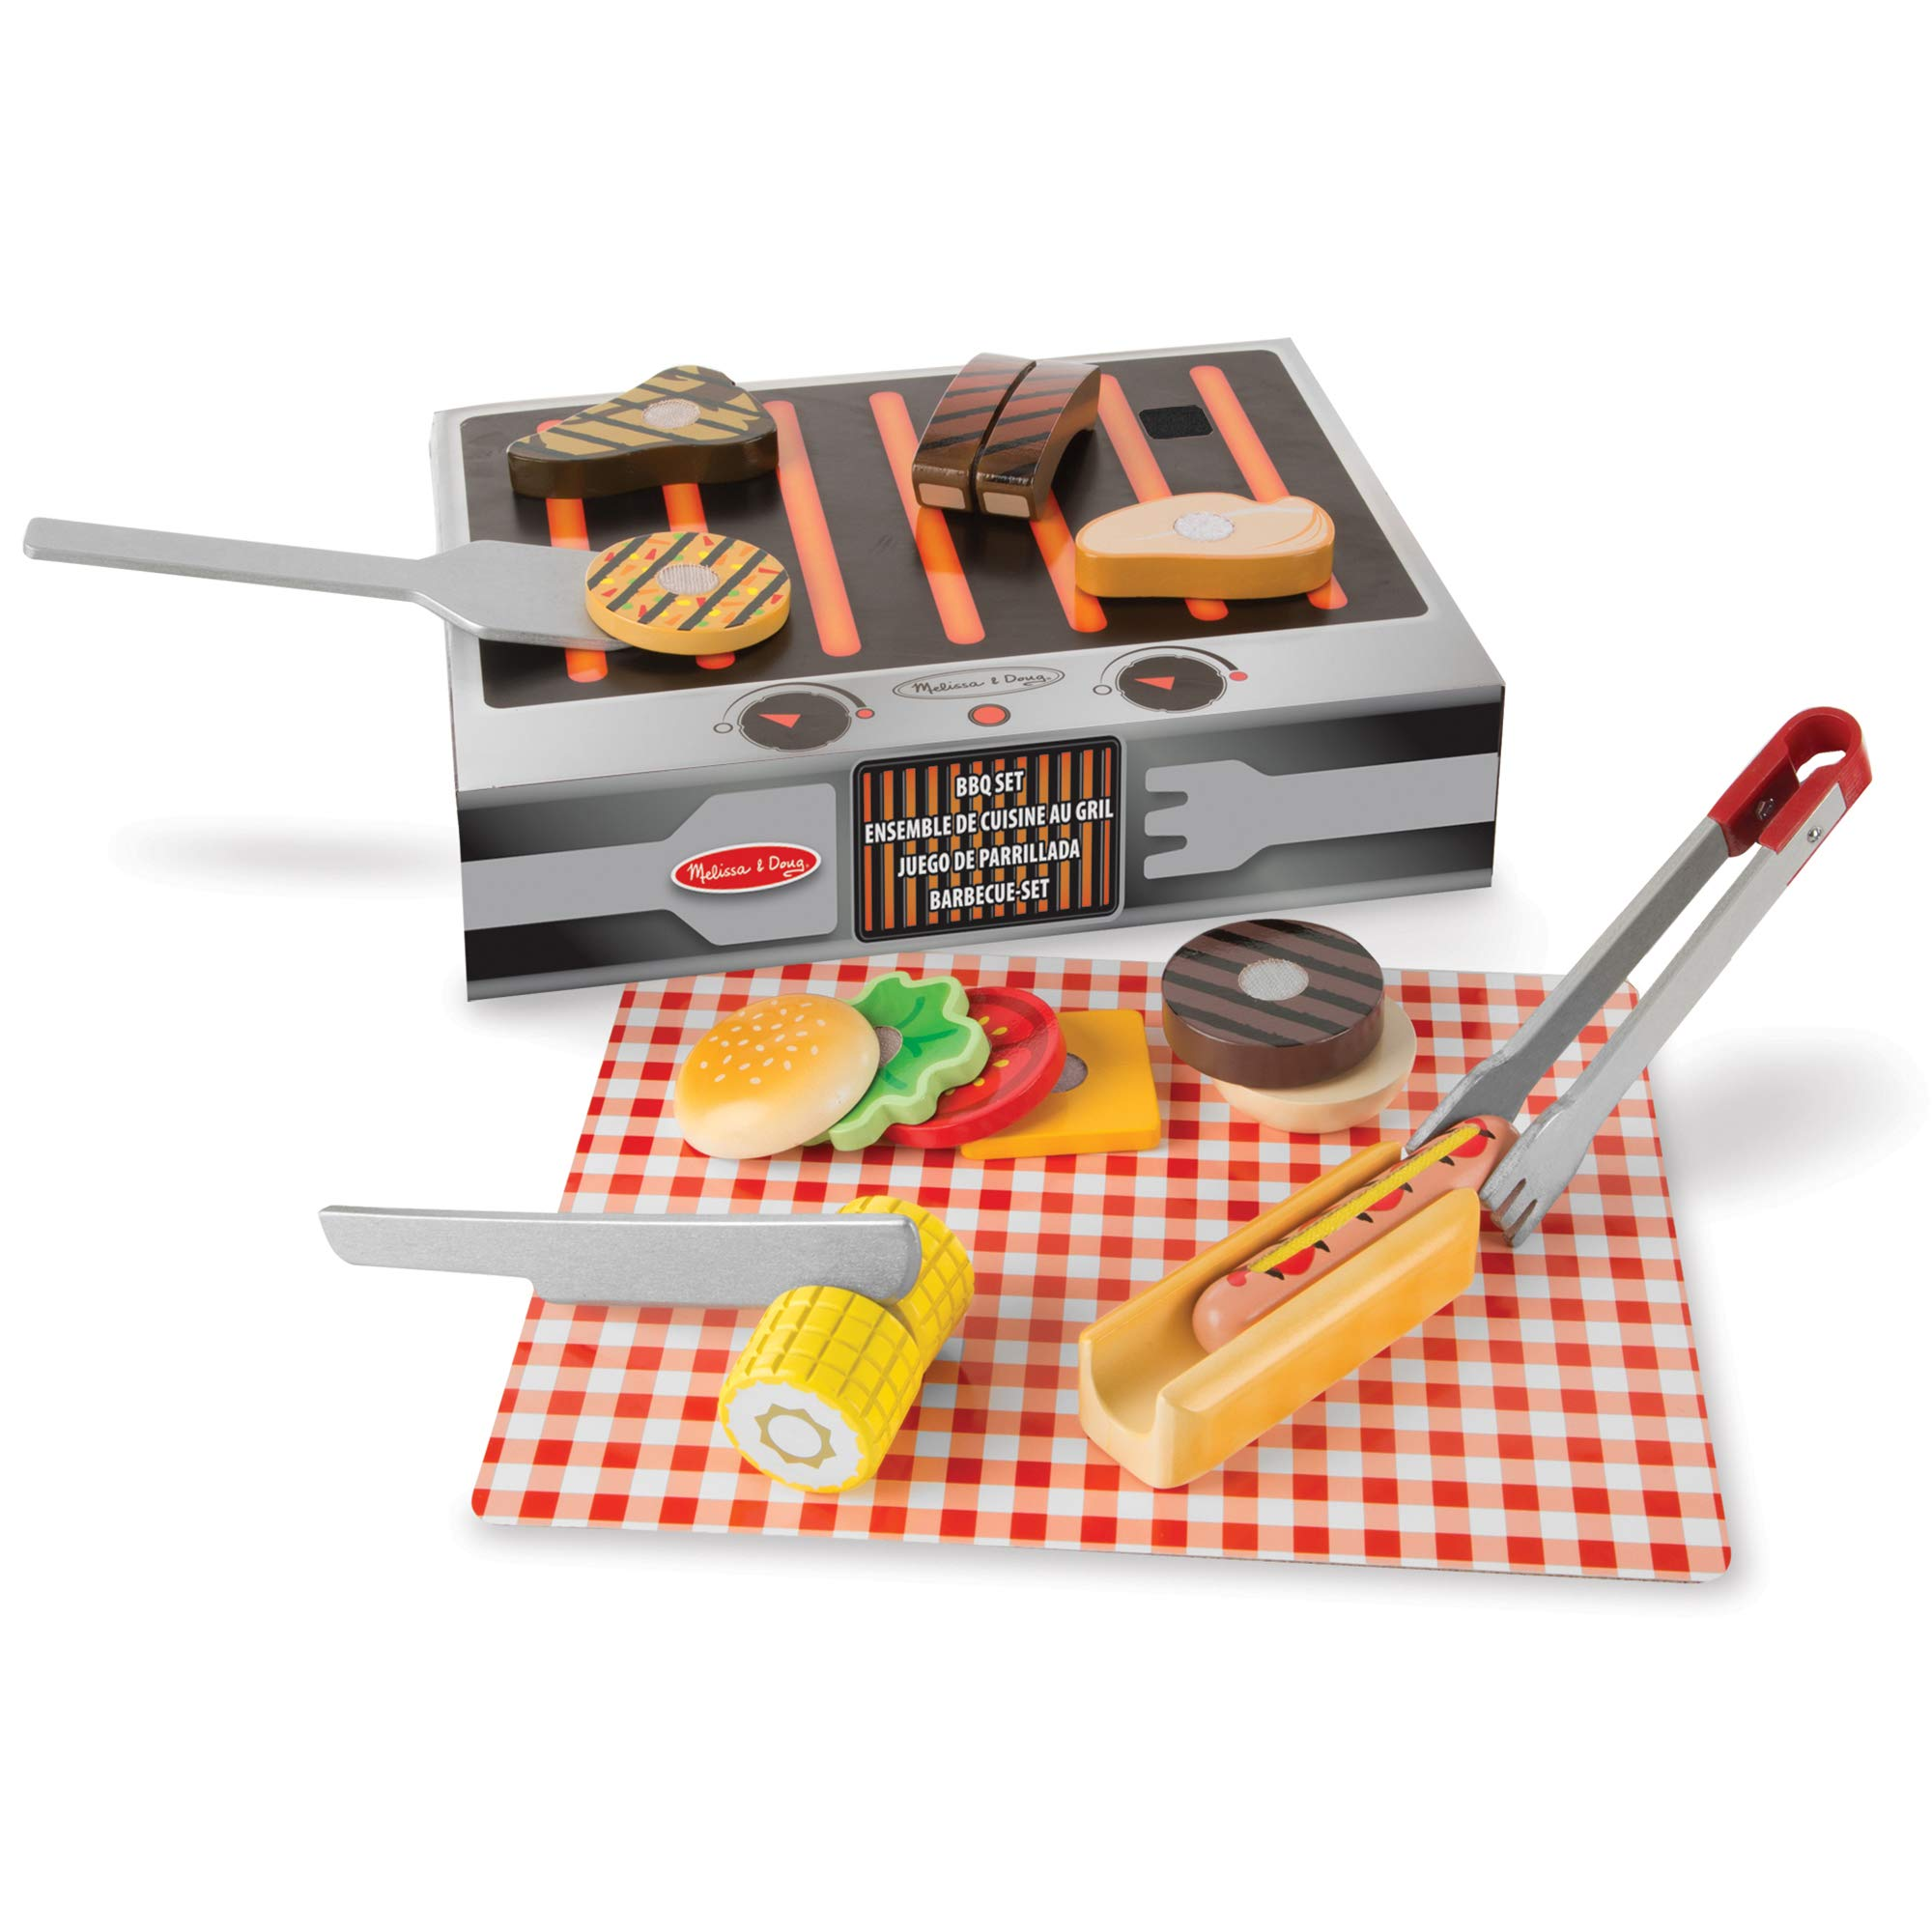 Melissa & Doug Wooden Grill & Serve BBQ Set (Wooden Play Food, 20 Pieces, Great Gift for Girls and Boys - Best for 2, 3, 4, 5 and 6 Year Olds) by Melissa & Doug